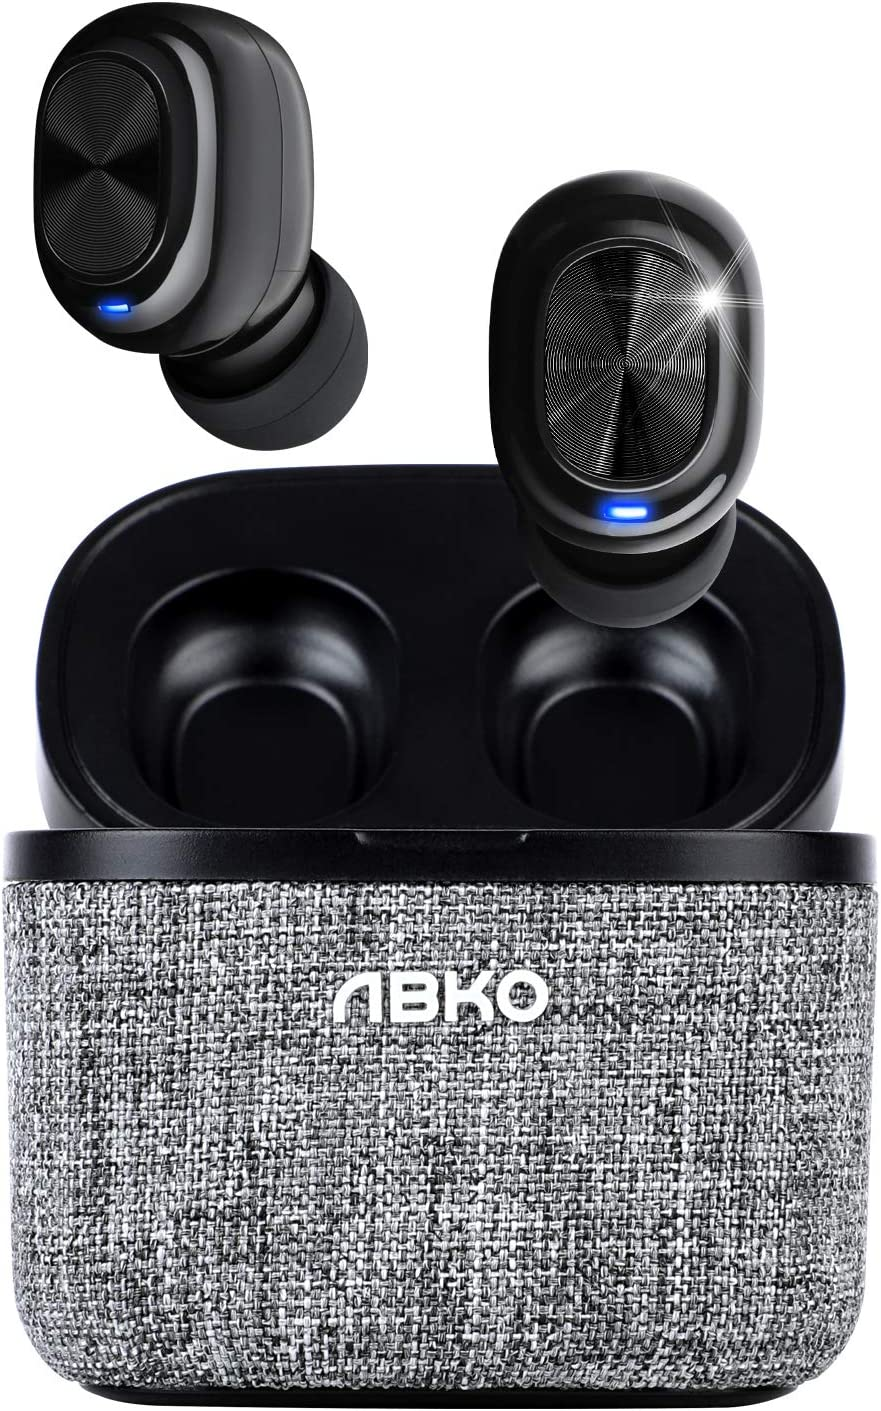 ABKO True Wireless Earbuds with Fabric Cradle Ultra Lightweight Compact Auto Pairing Bluetooth in-Ear Headphones USB-C Charging IPX4 Waterproof CWS120 Black